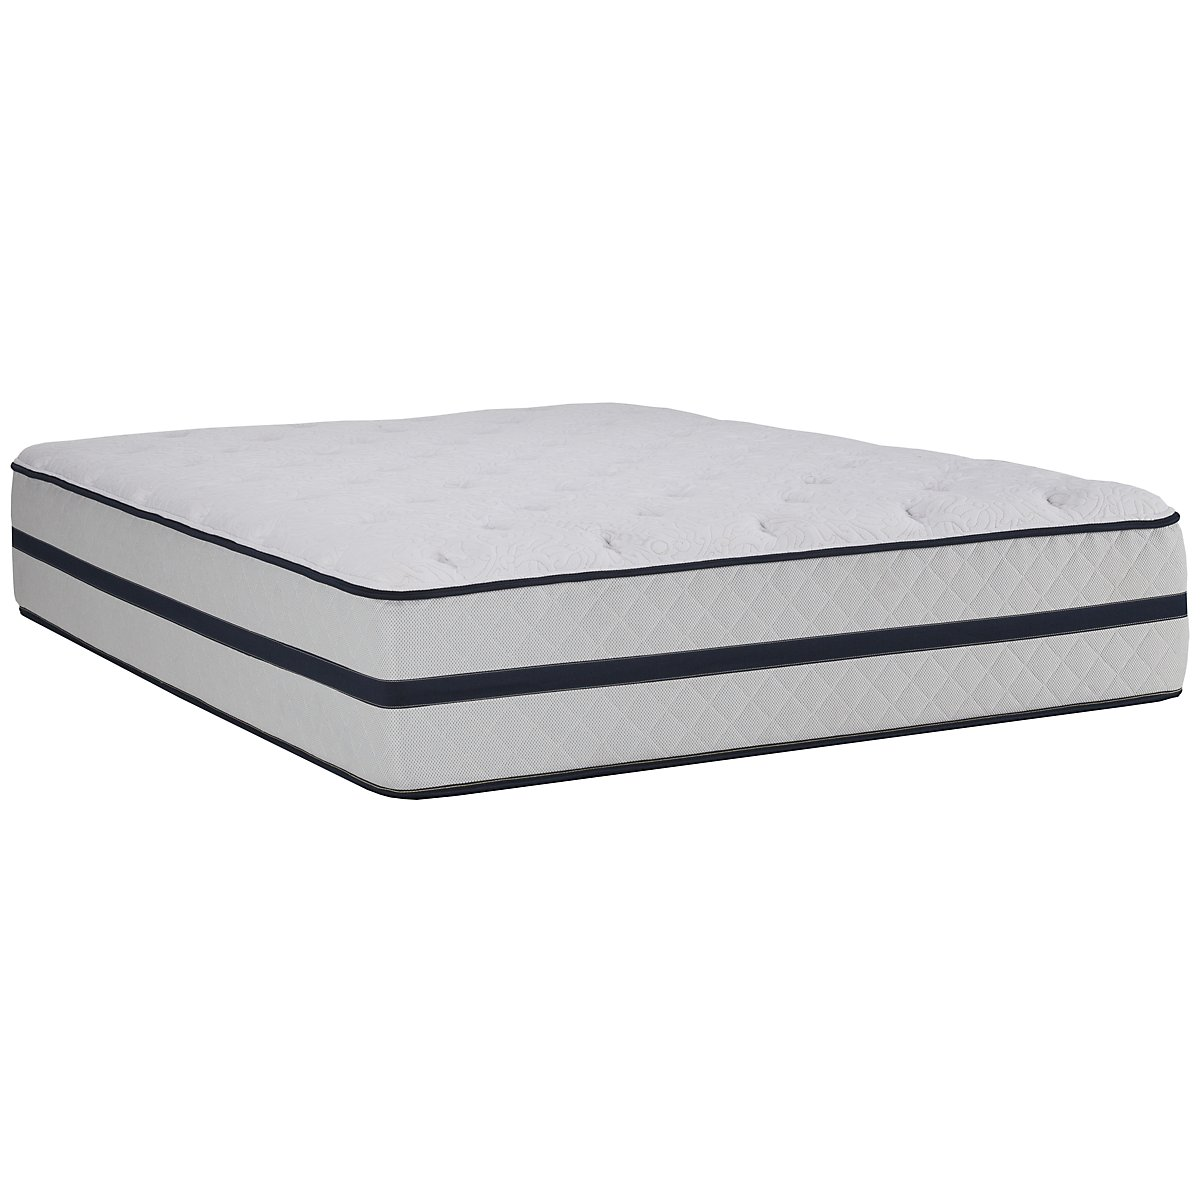 Kevin Charles Wellspring Luxury Firm Innerspring Mattress